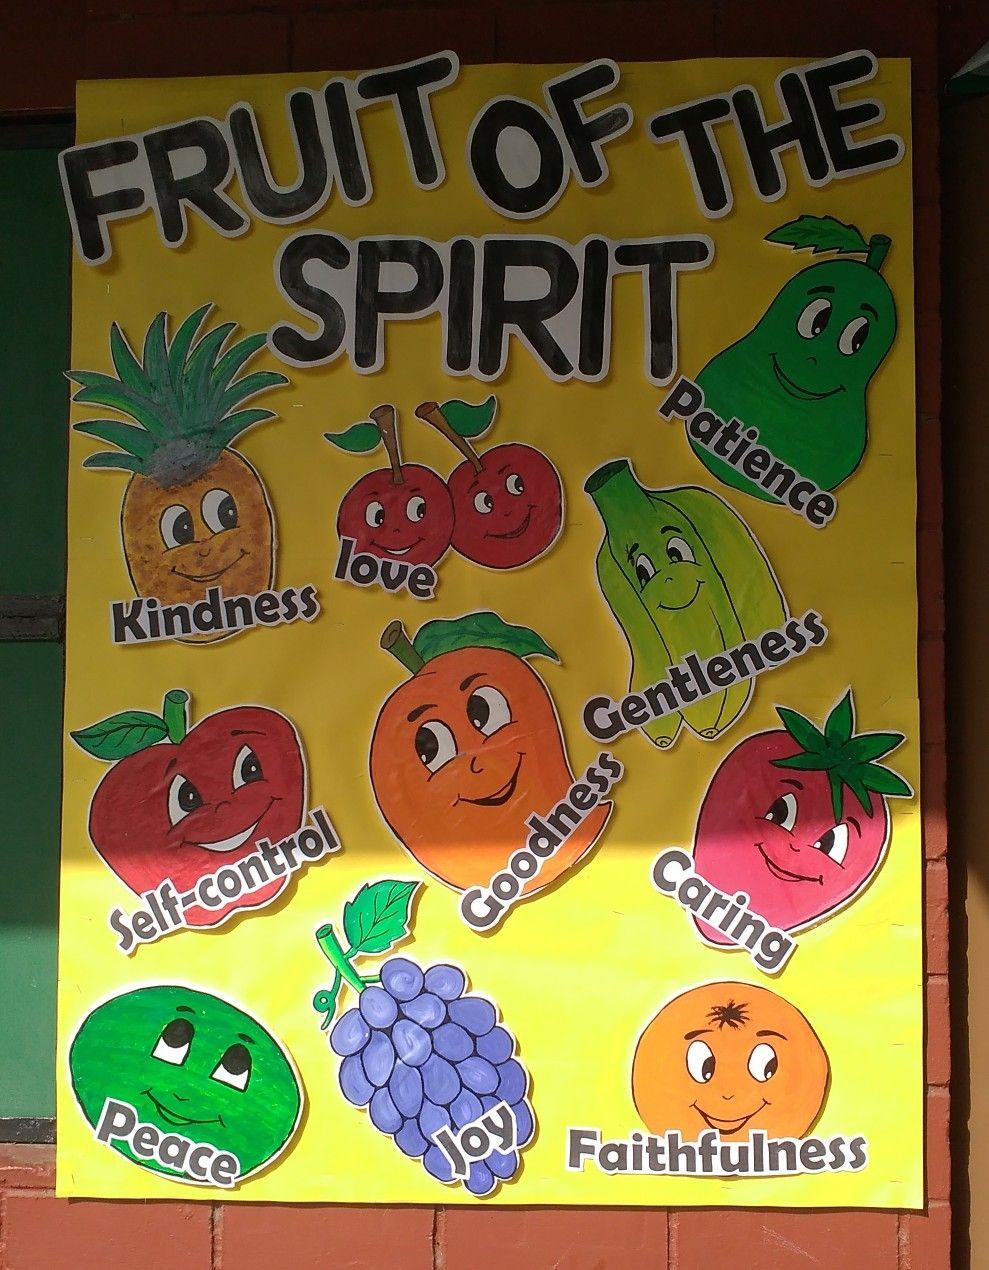 Art Decorating And Crafting School Bulletin Board Fruits Of Spirit Board Thermocol Craft For